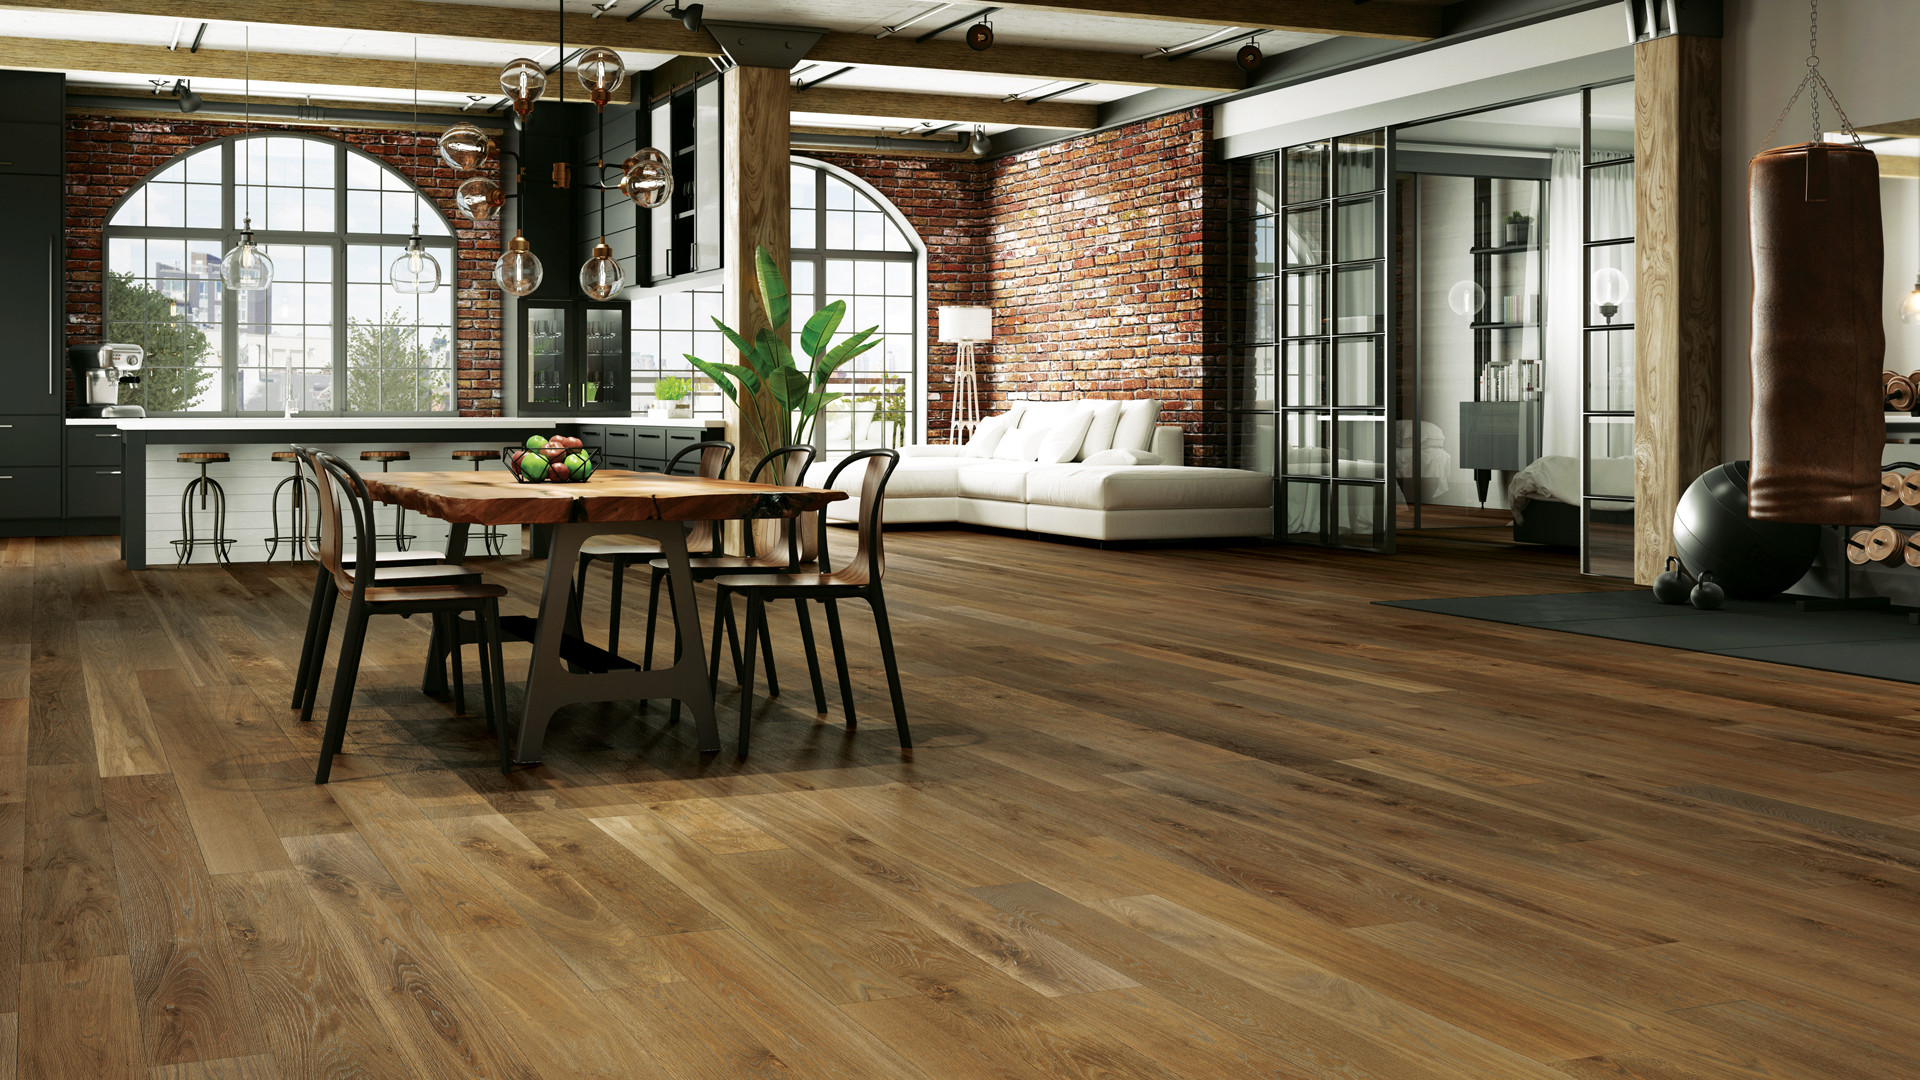 types of old hardwood floors of 4 latest hardwood flooring trends of 2018 lauzon flooring pertaining to combined with a wire brushed texture and an ultra matte sheen these new 7a½ wide white oak hardwood floors will definitely add character to your home